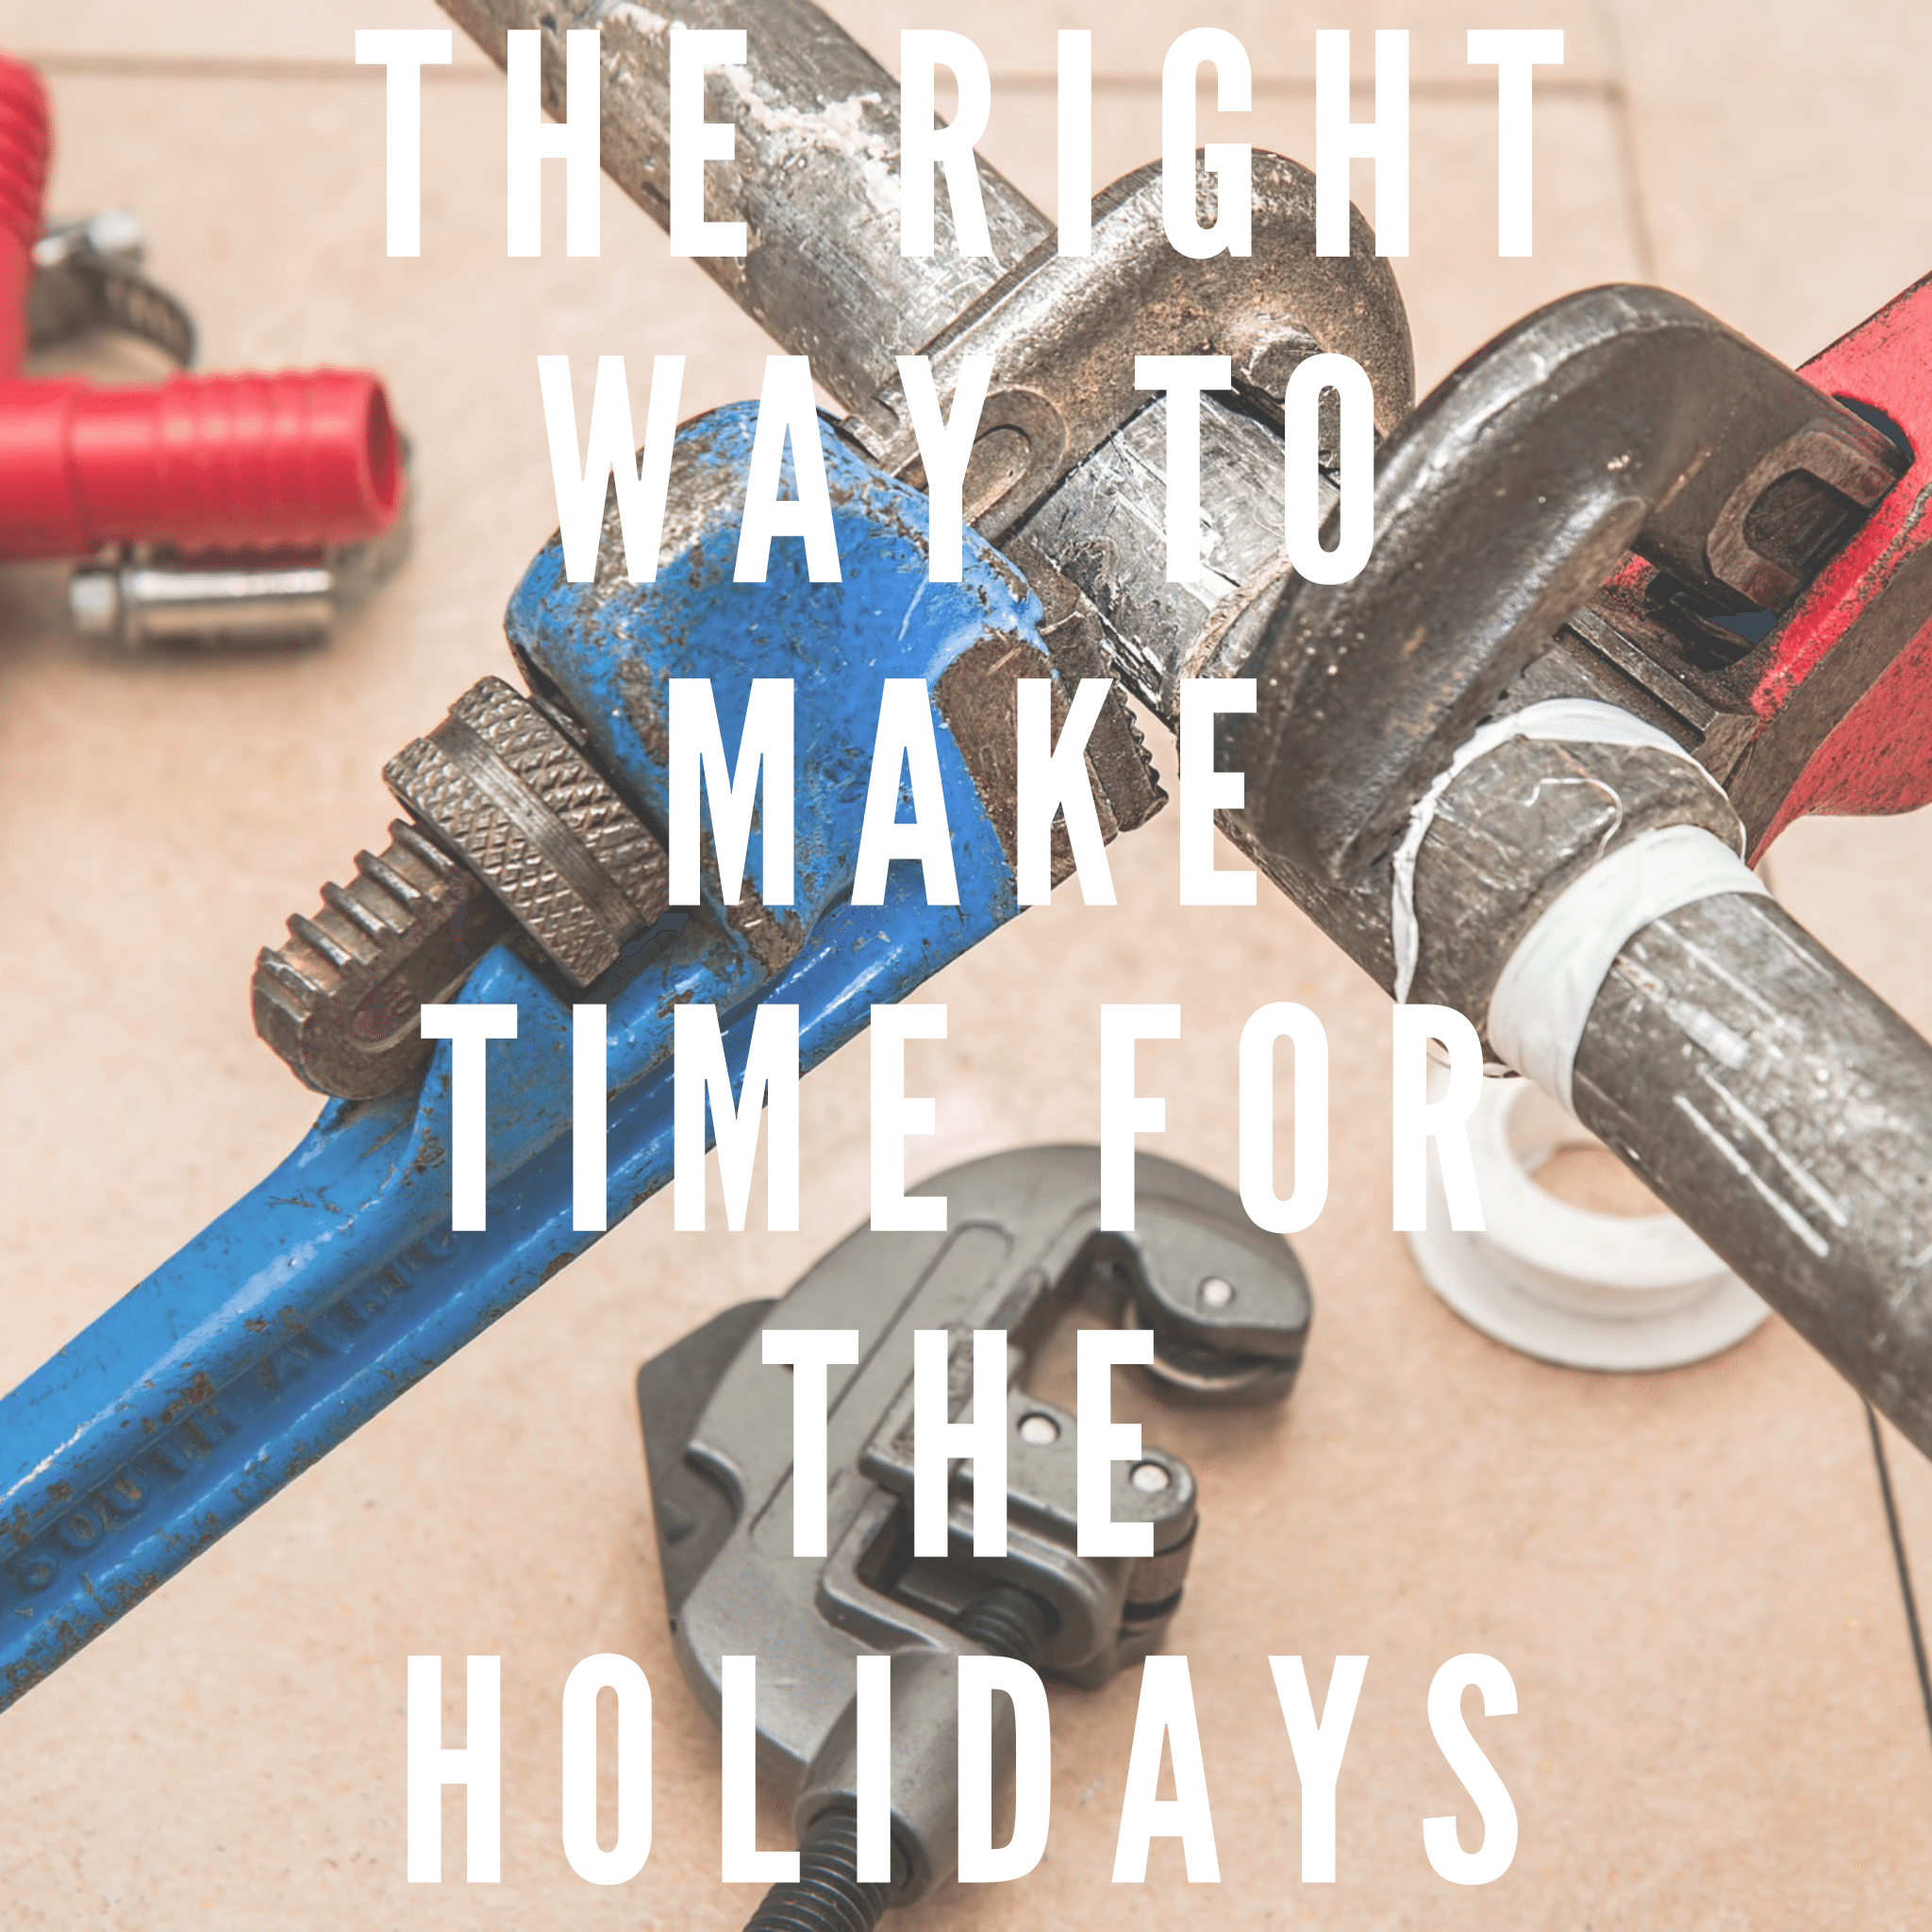 Right-way-make-time-holidays